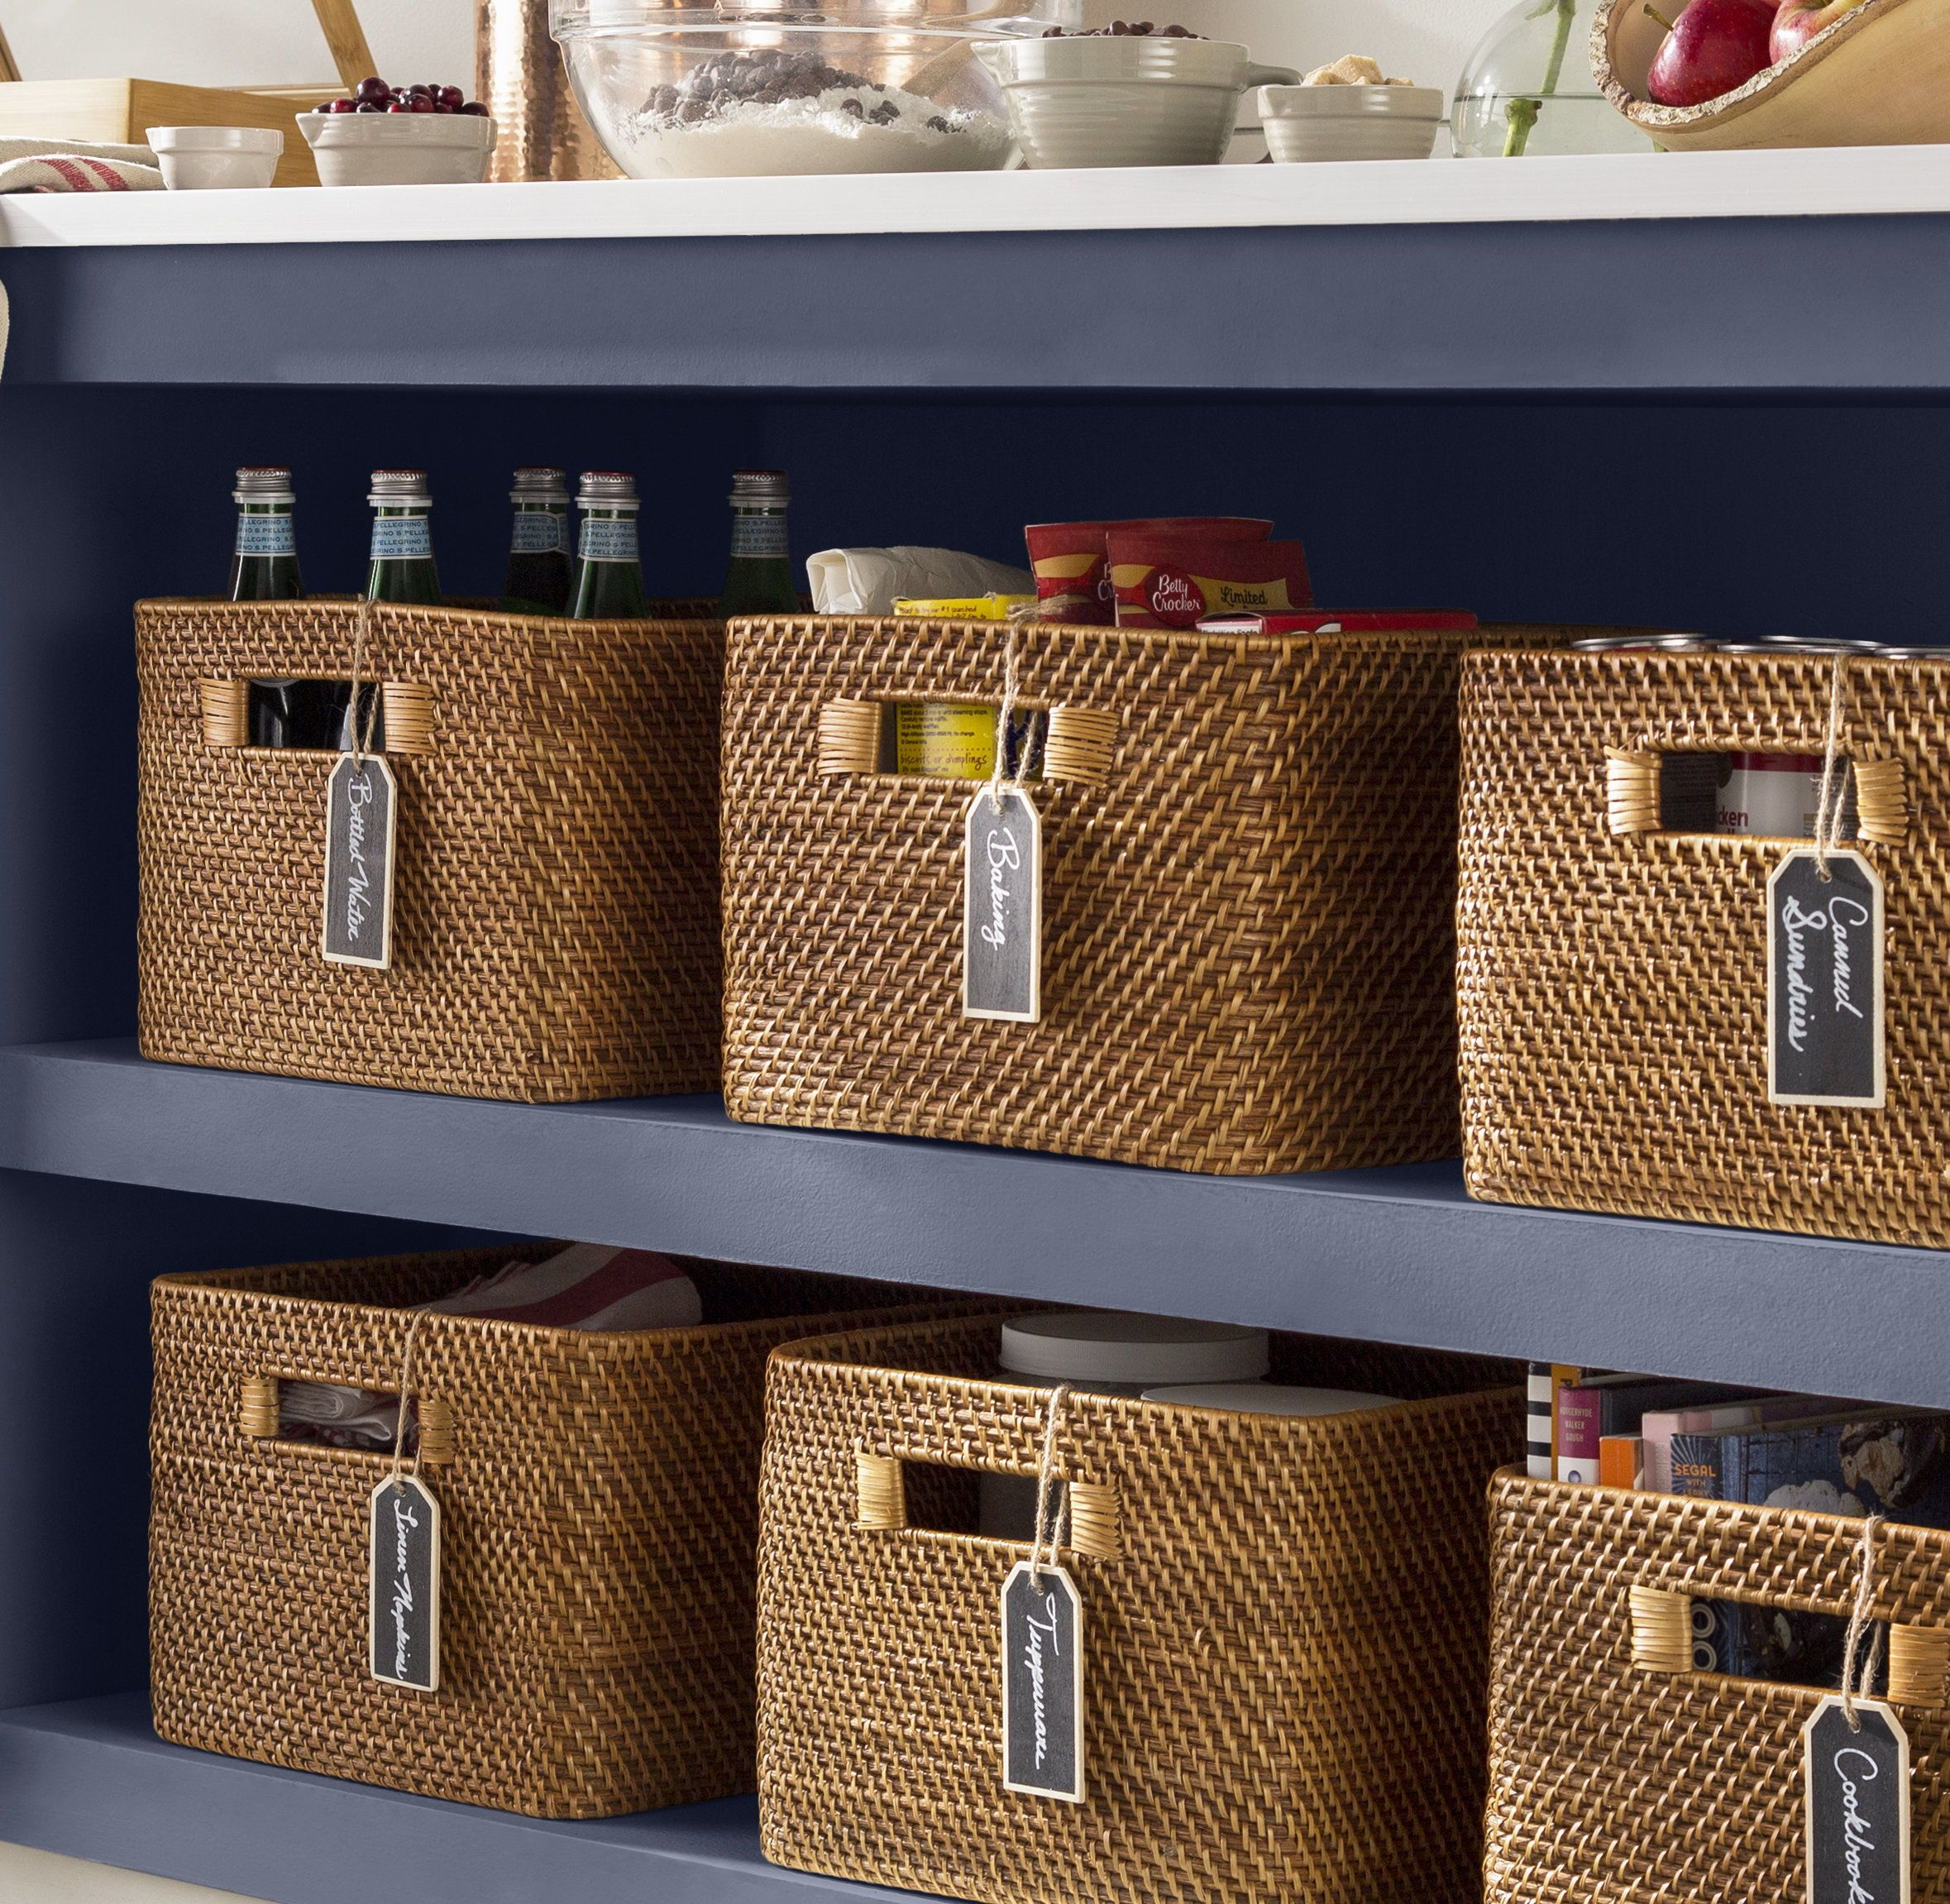 50 Wicker Baskets For Sale We Love Wicker Laundry Baskets Rattan Baskets And More In A Beach Home Rattan Basket Storage Baskets Finishing Basement Wicker storage baskets for shelves